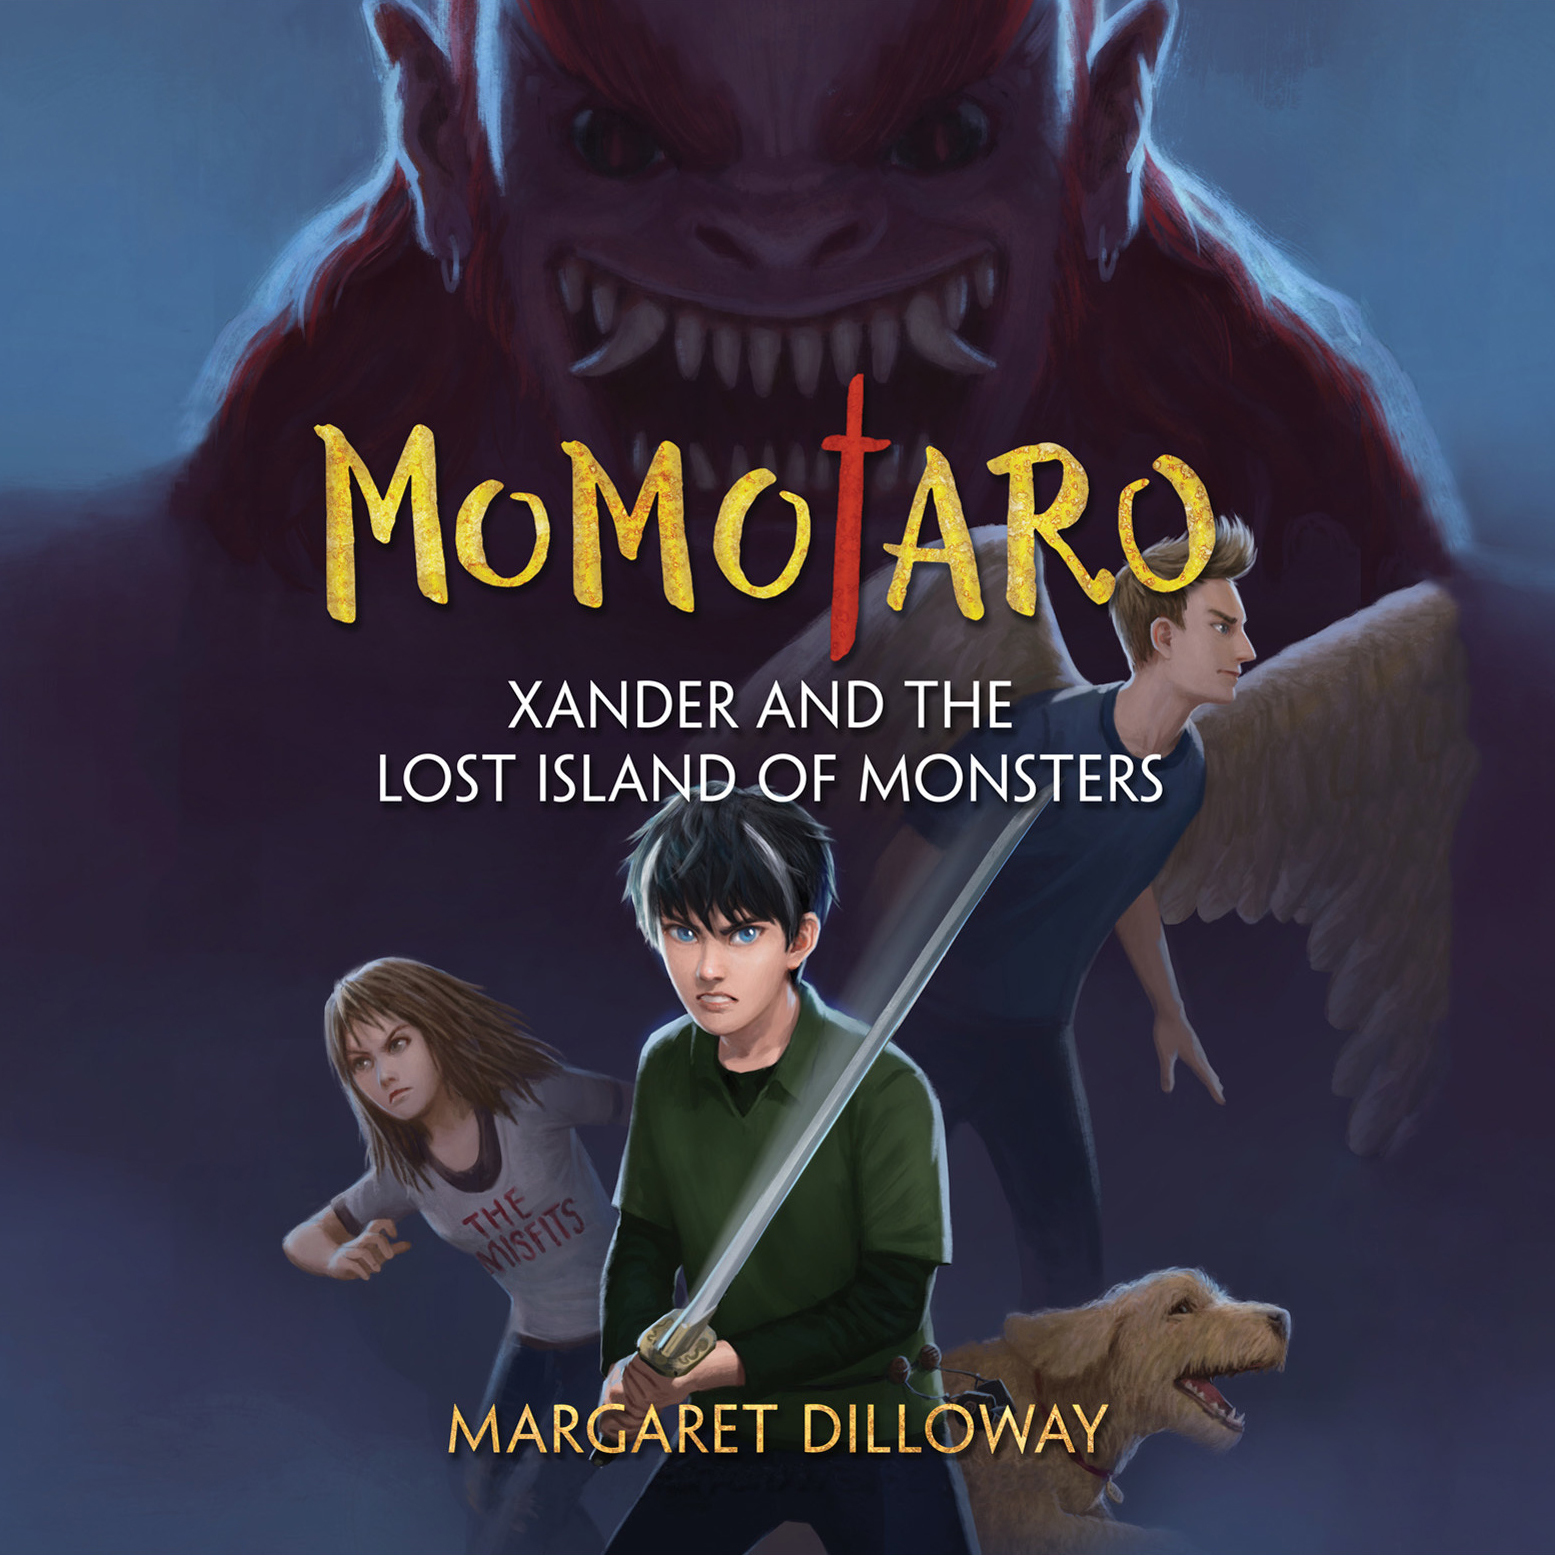 Printable Momotaro Xander and the Lost Island of Monsters Audiobook Cover Art